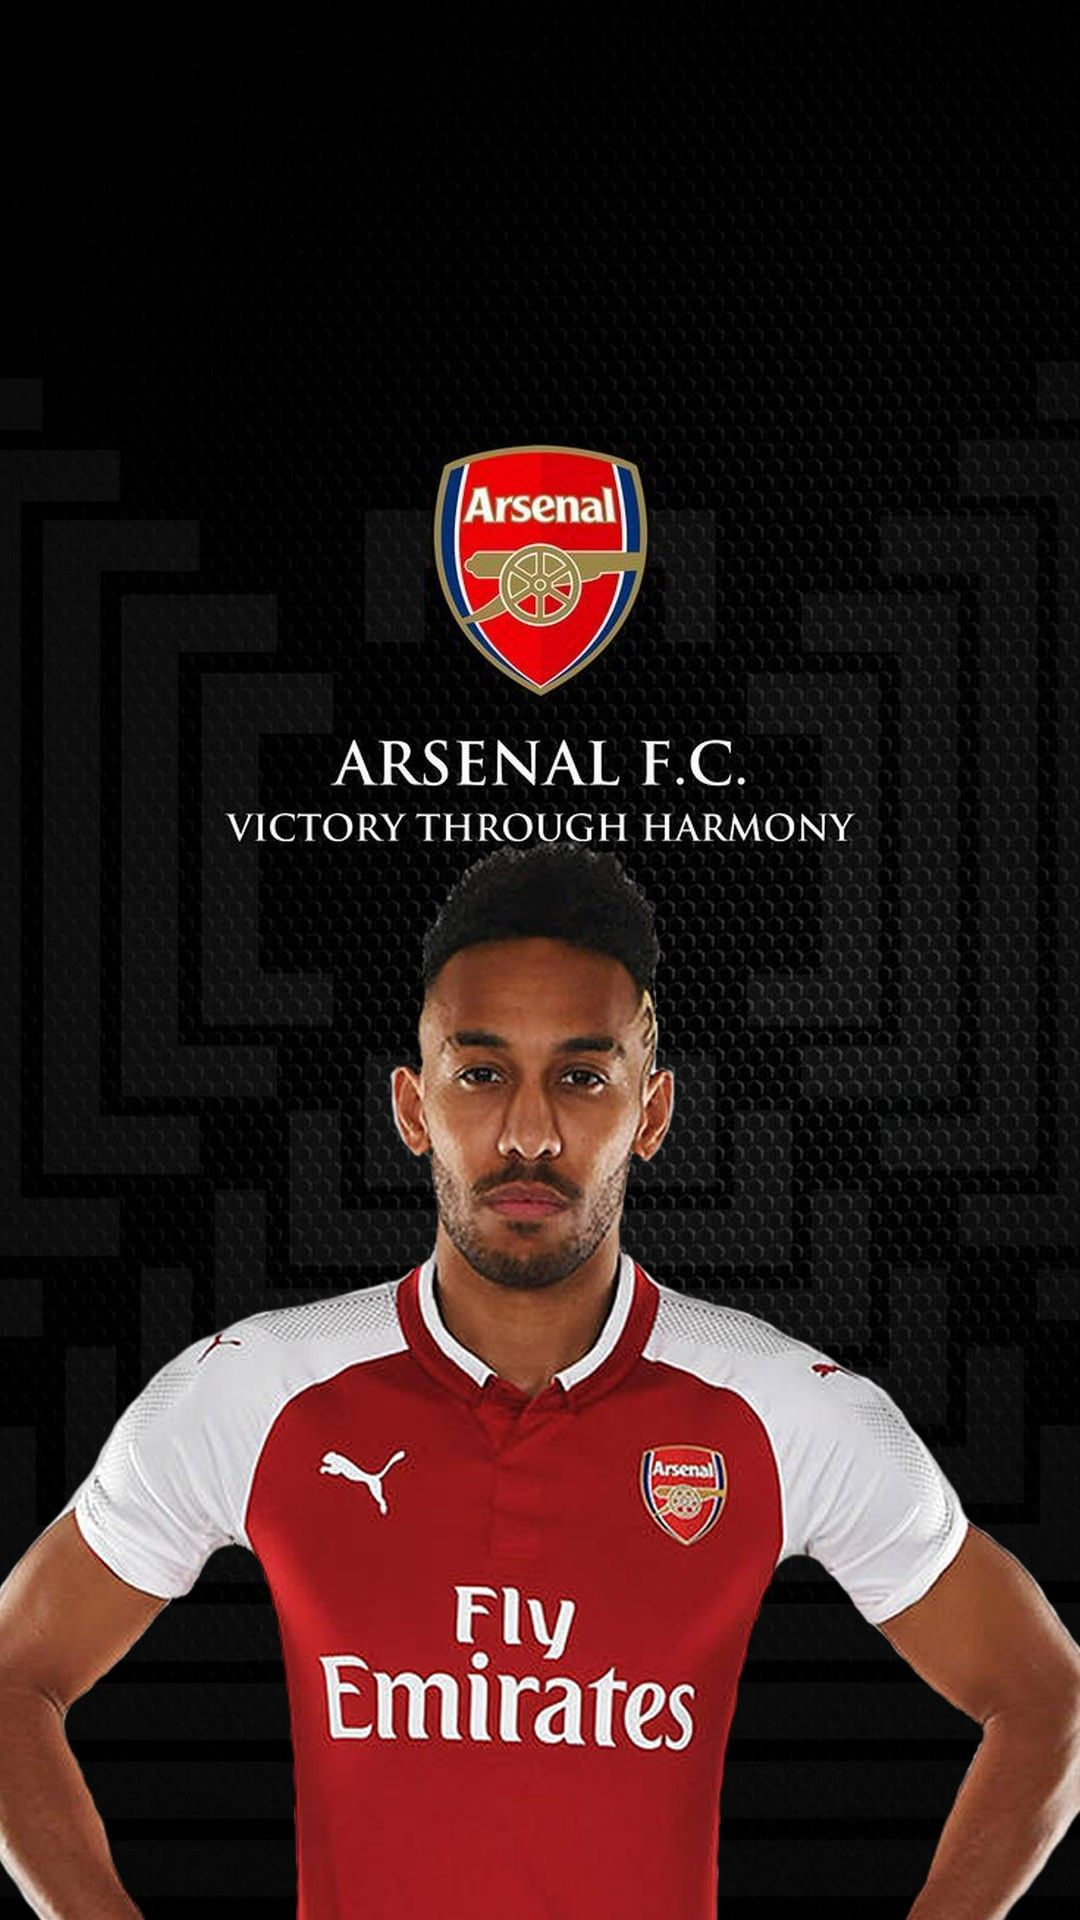 PhoneWallpaper Pierre Emerick Aubameyang Arsenal Wallpaper